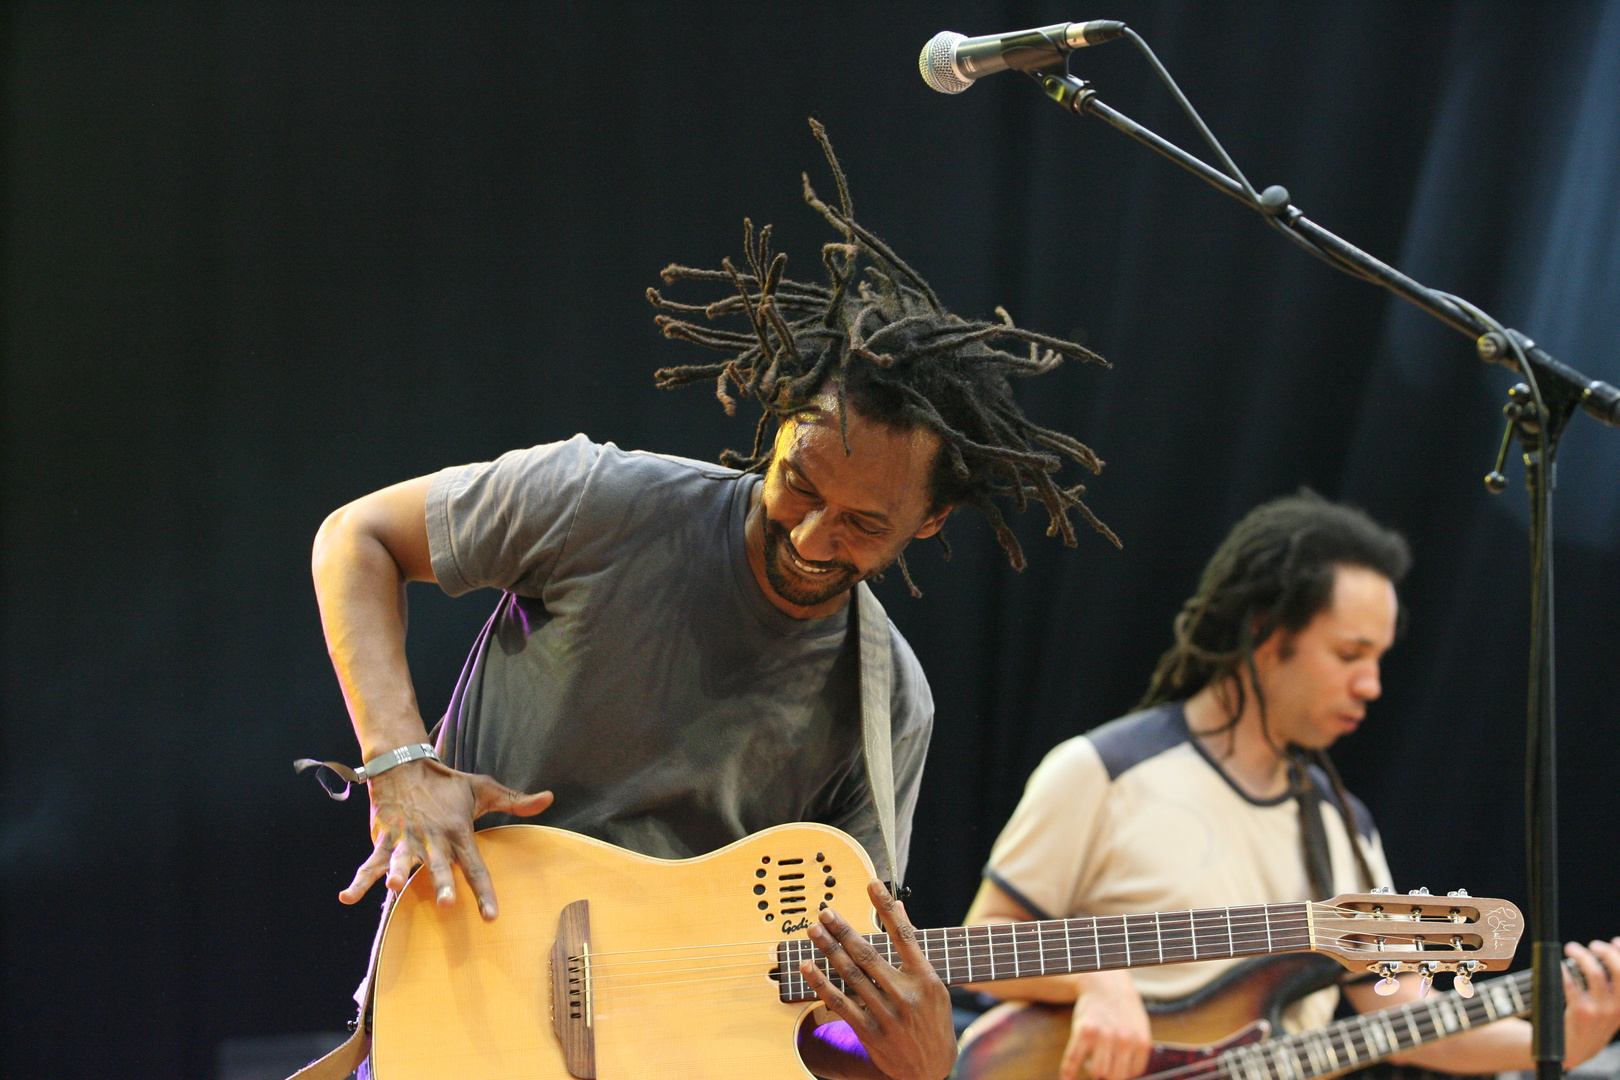 Flying Dreads - Daby Touré